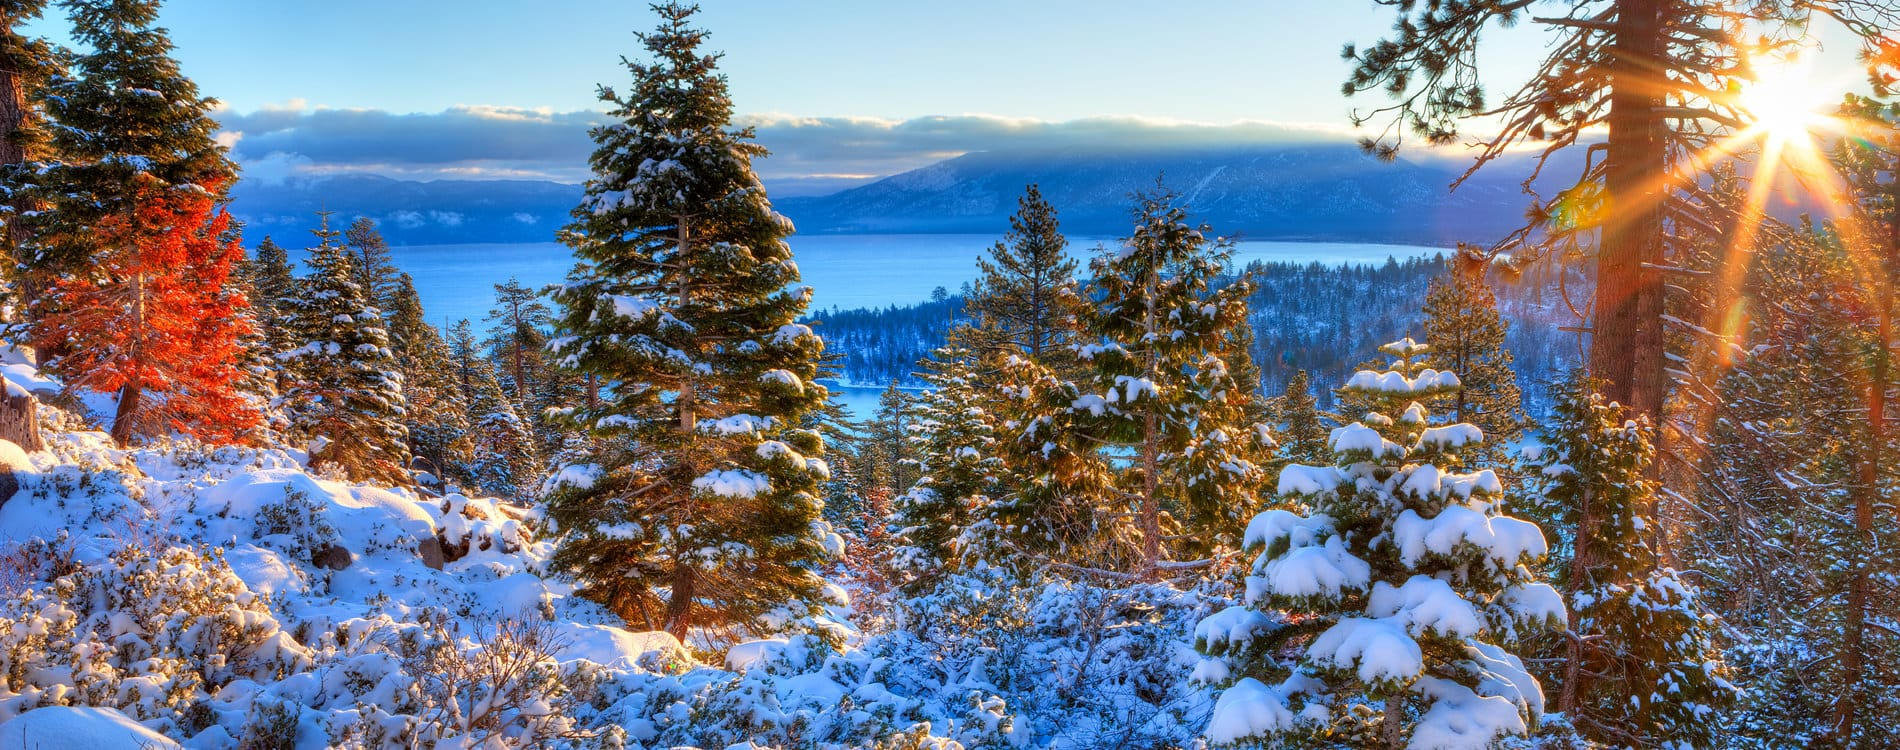 Winter sunrise over Lake Tahoe California